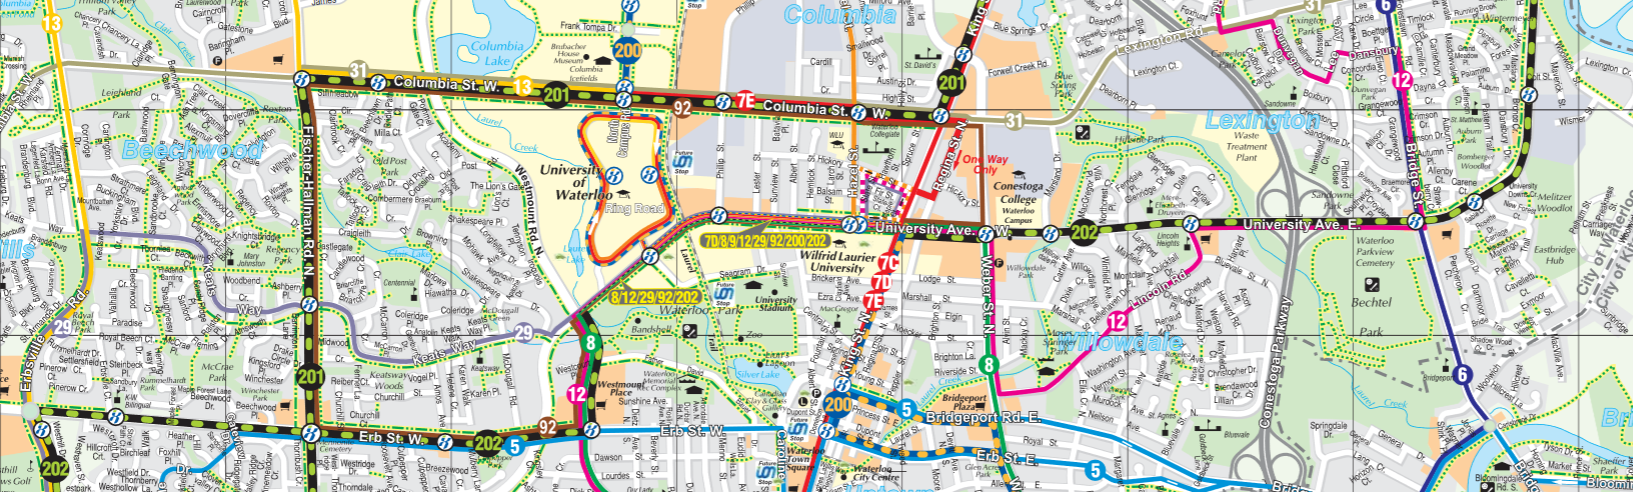 The 202 is Waterloo's best cross-town route, extending to Erb West and University East.